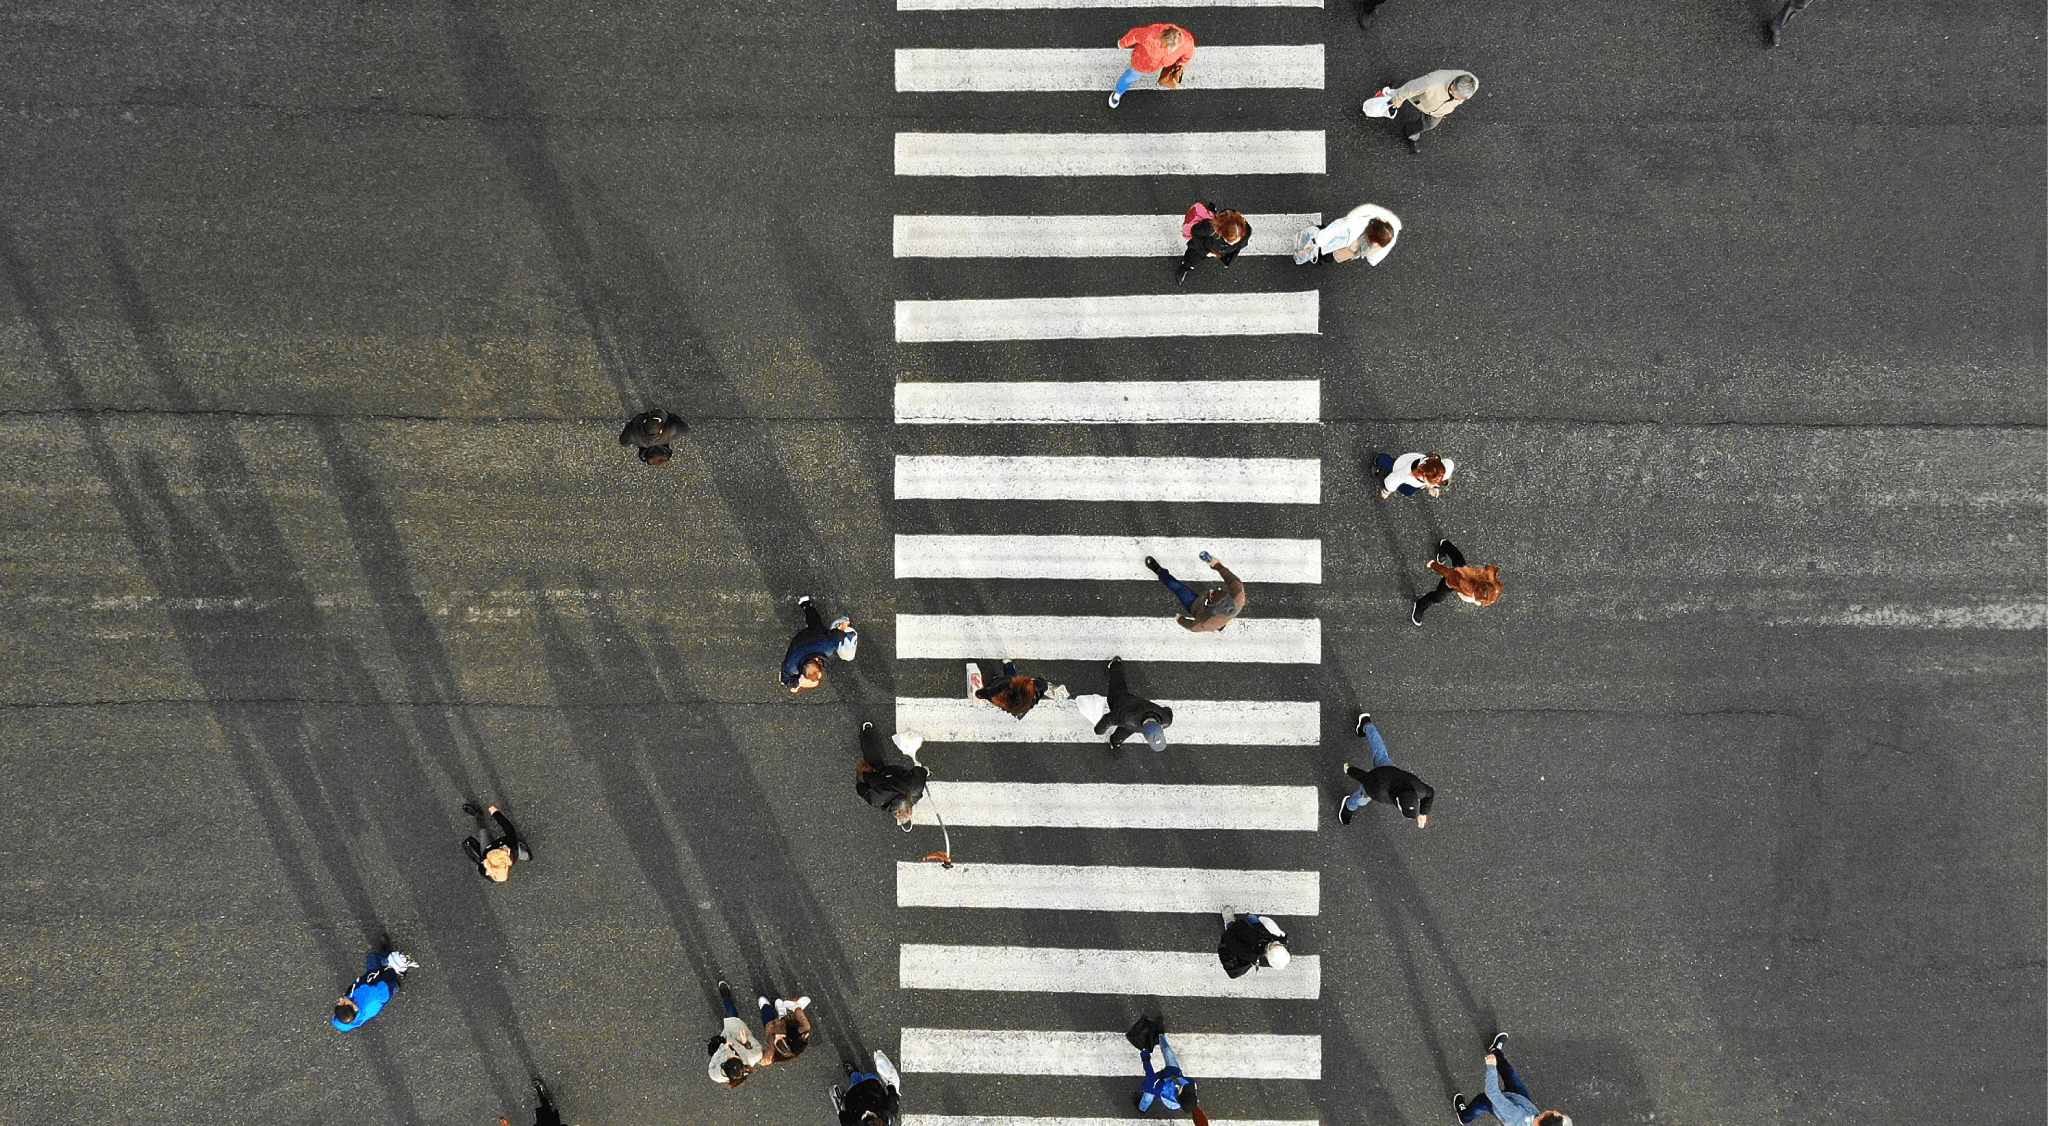 pedestrians crossing crosswalk